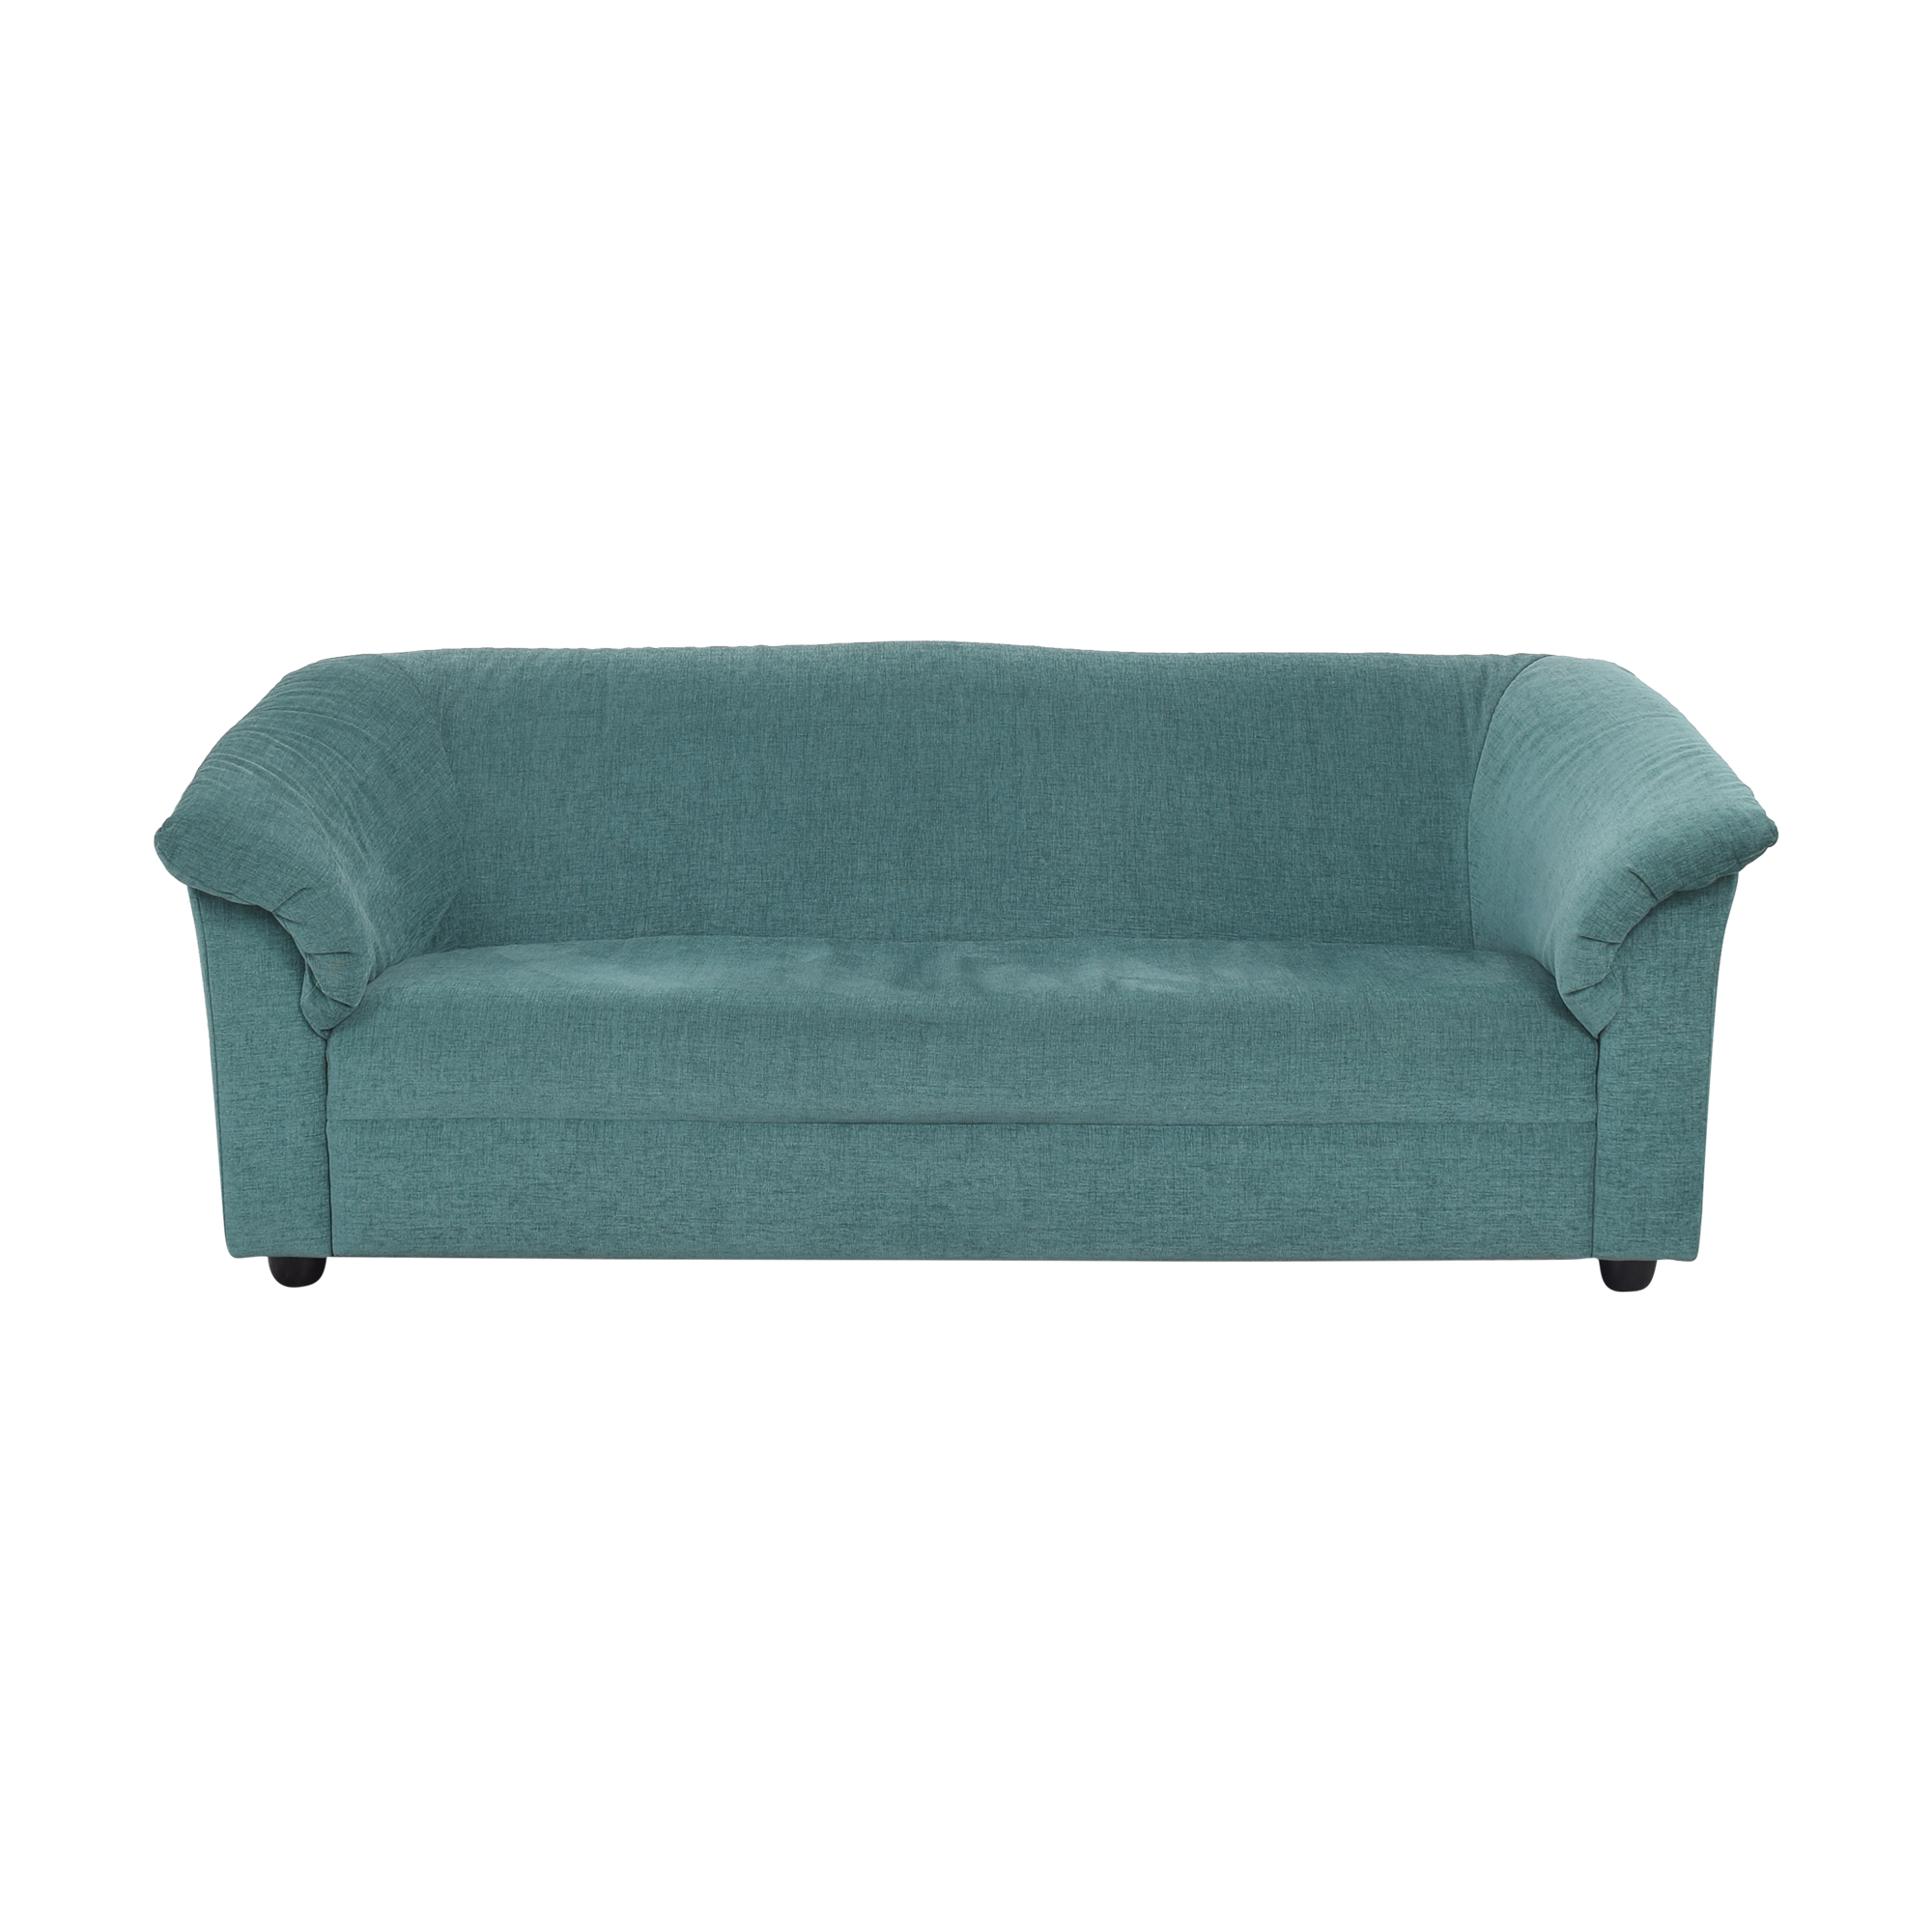 Macy's Bench Cushion Sofa Macy's